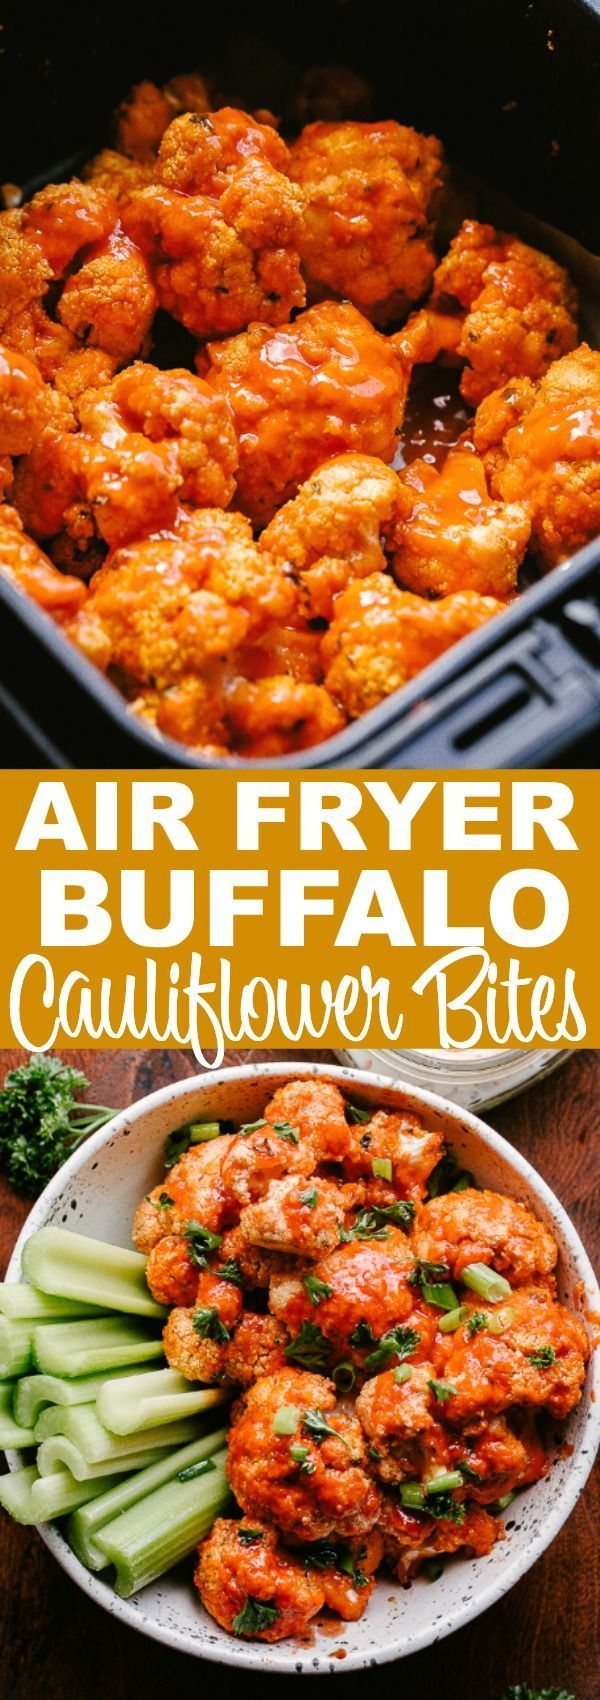 Bouchées de chou-fleur Buffalo Air Fryer   – Healthy & Light Recipes